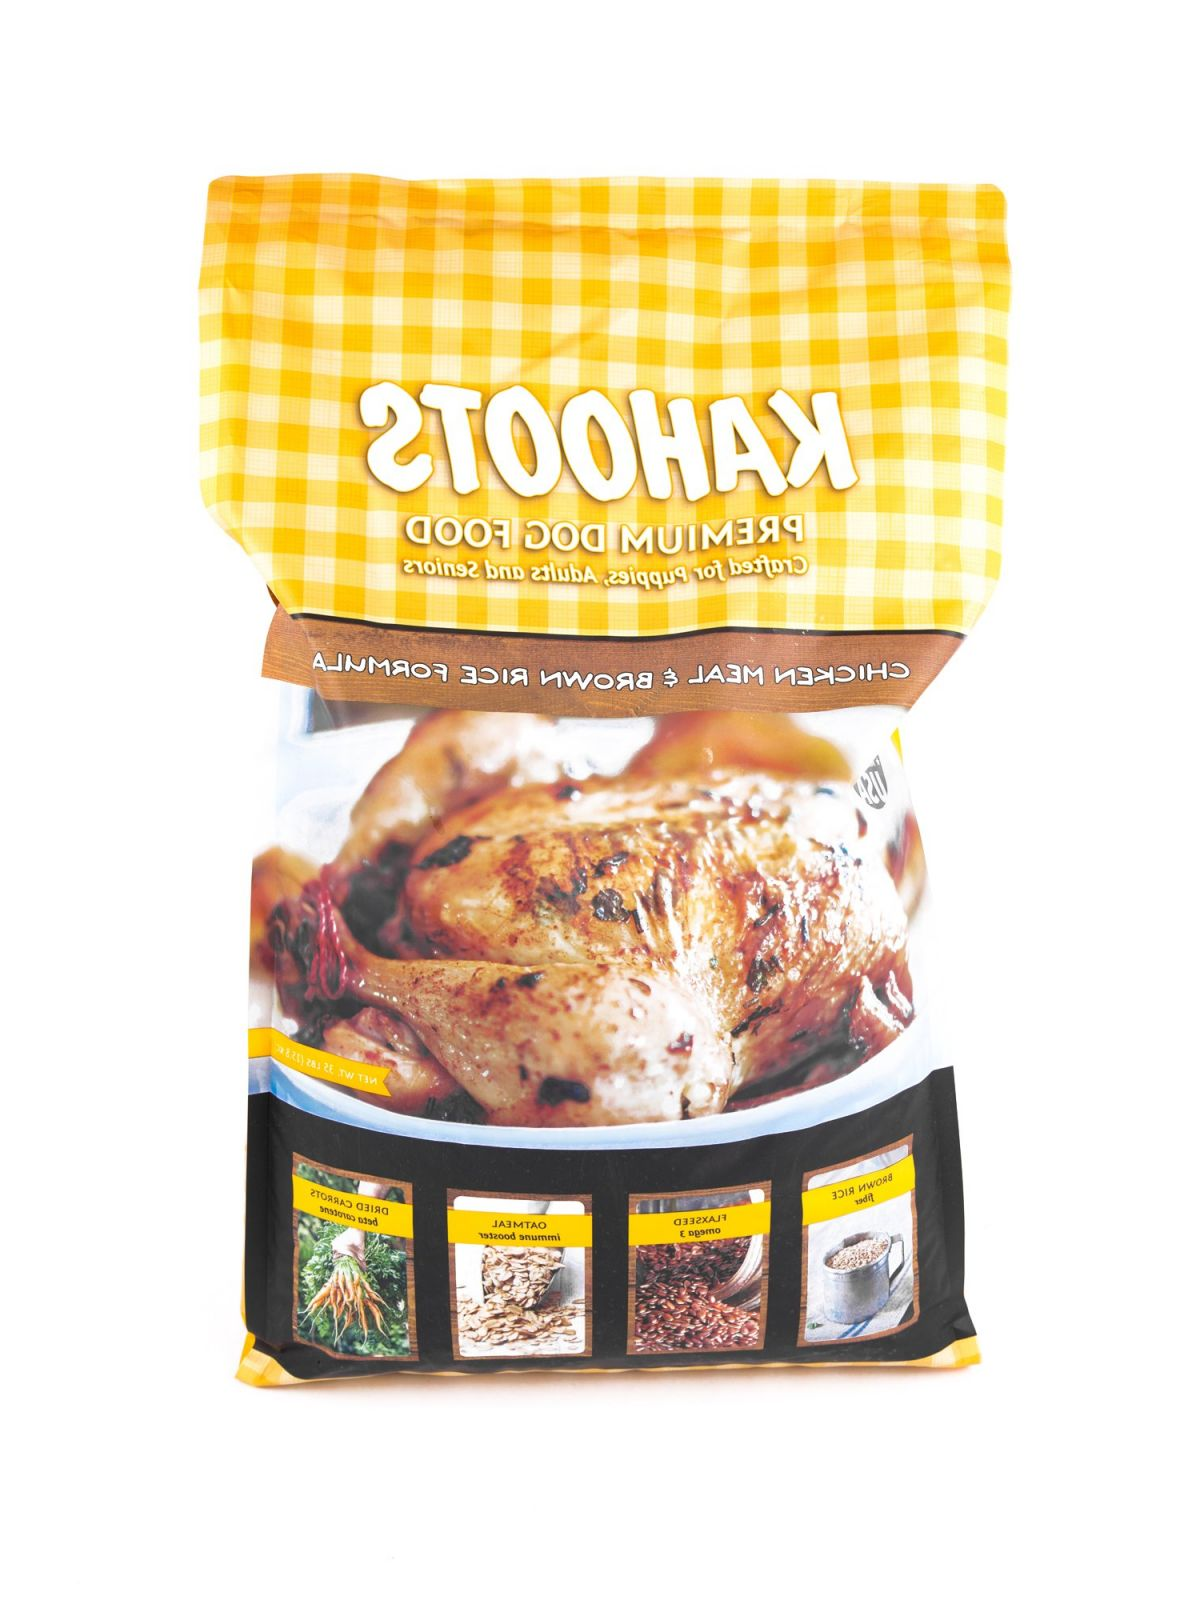 Short information about chicken and rice for large dog